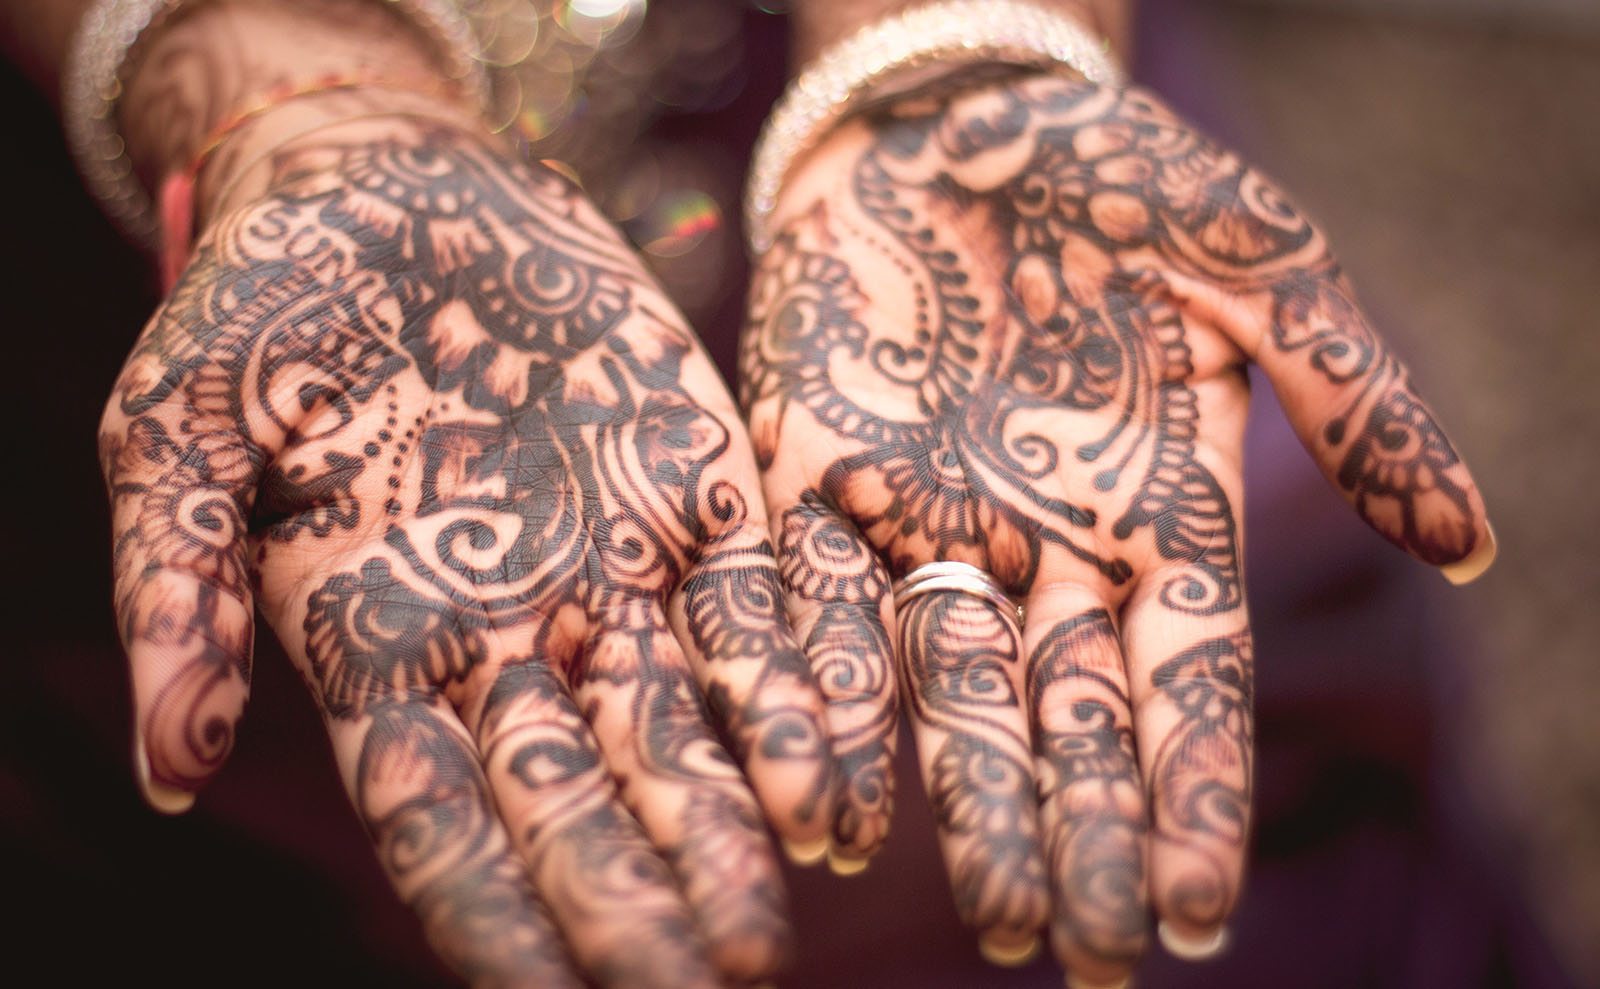 The Intricate Design and Moroccan Tradition of Henna Tattoos